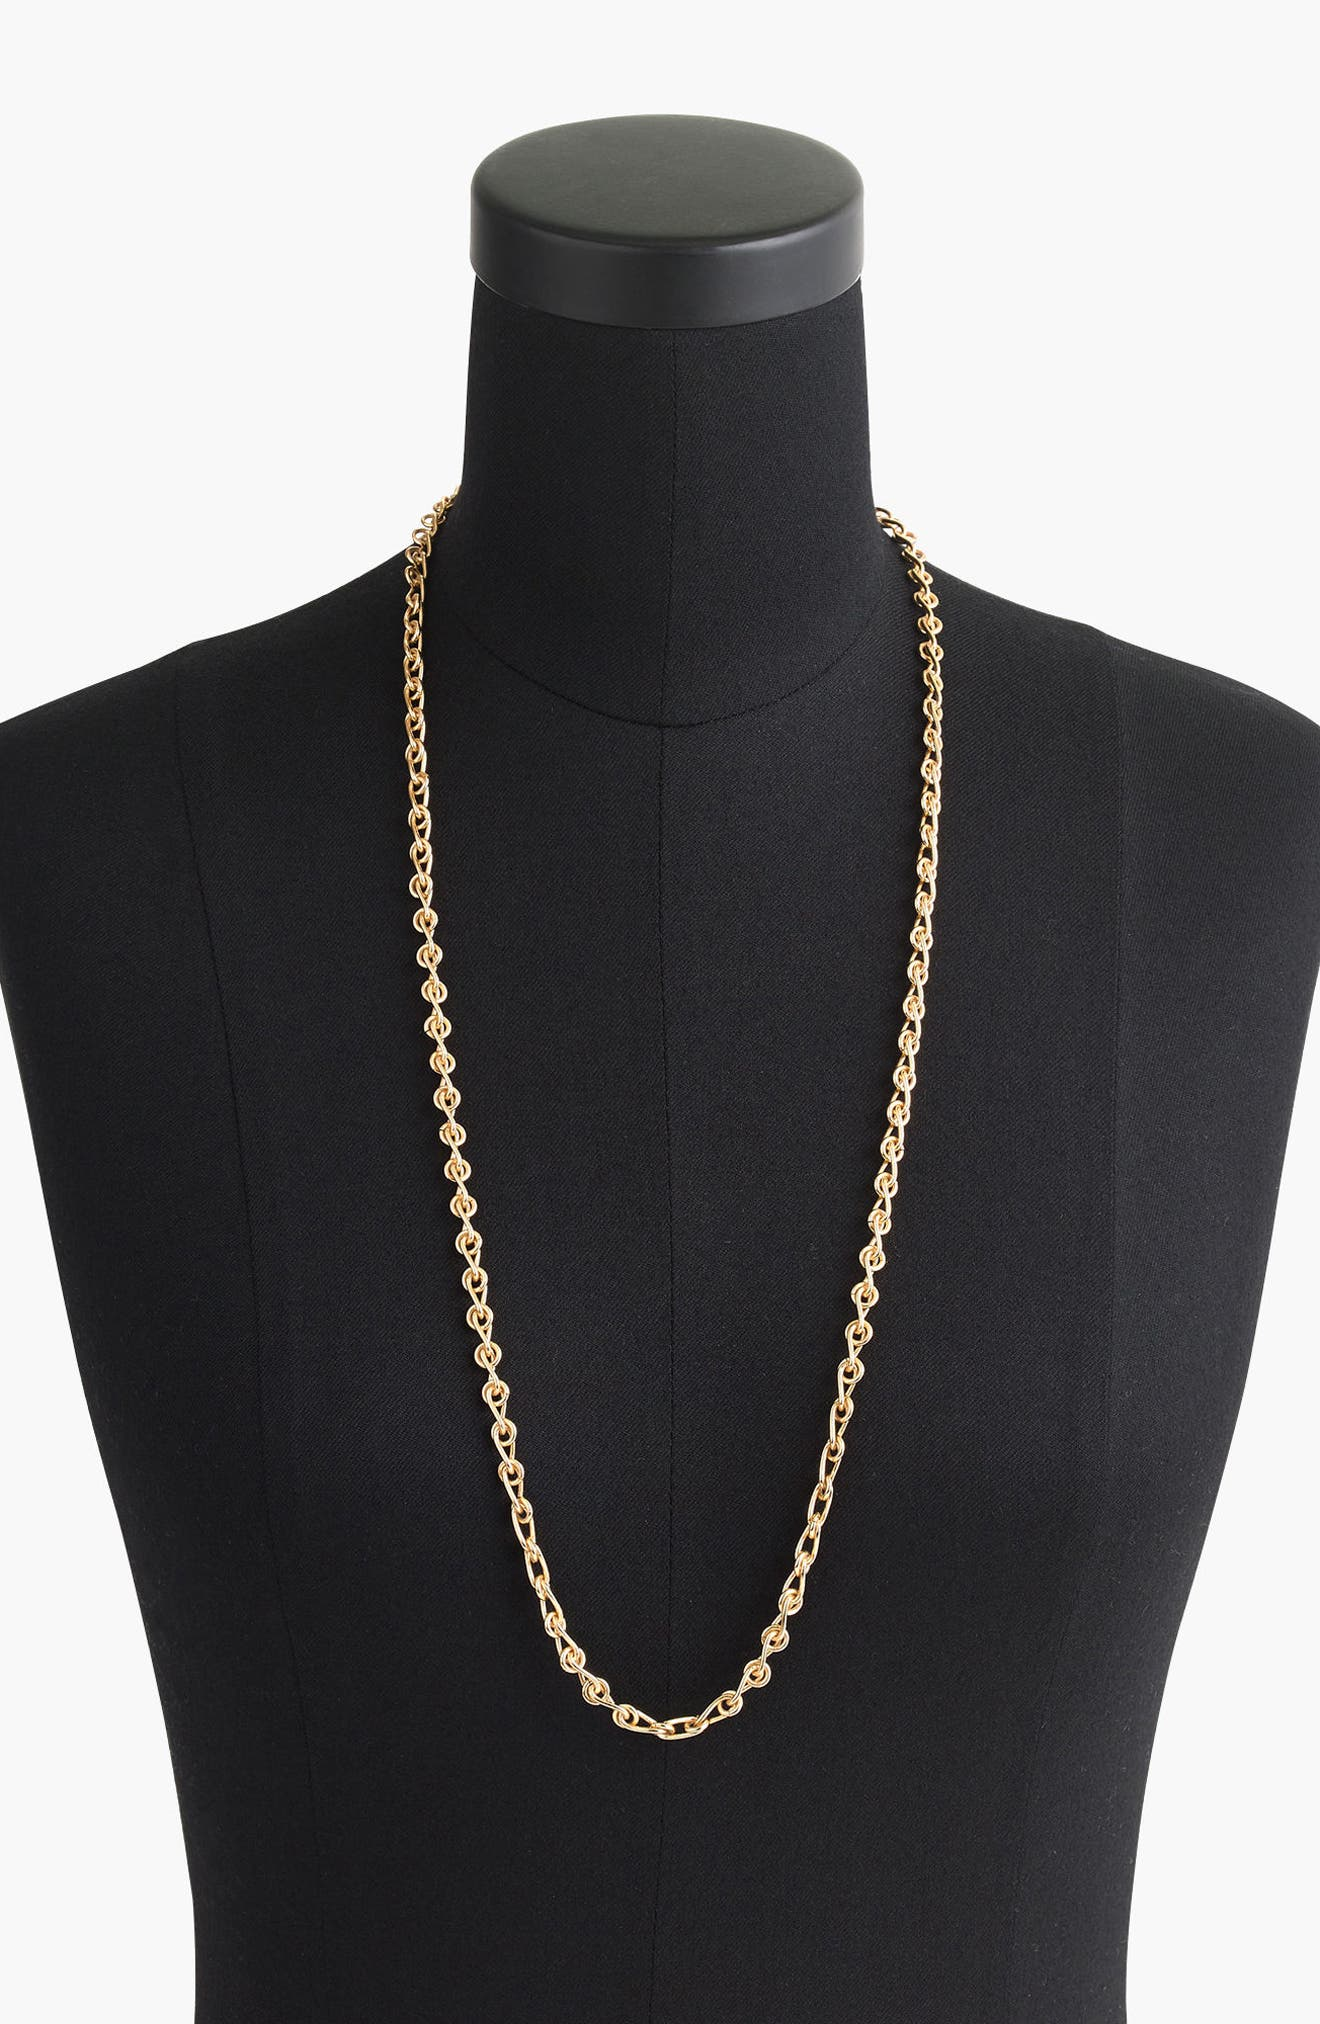 J.Crew Chain Link Lariat Necklace,                         Main,                         color, Burnished Gold